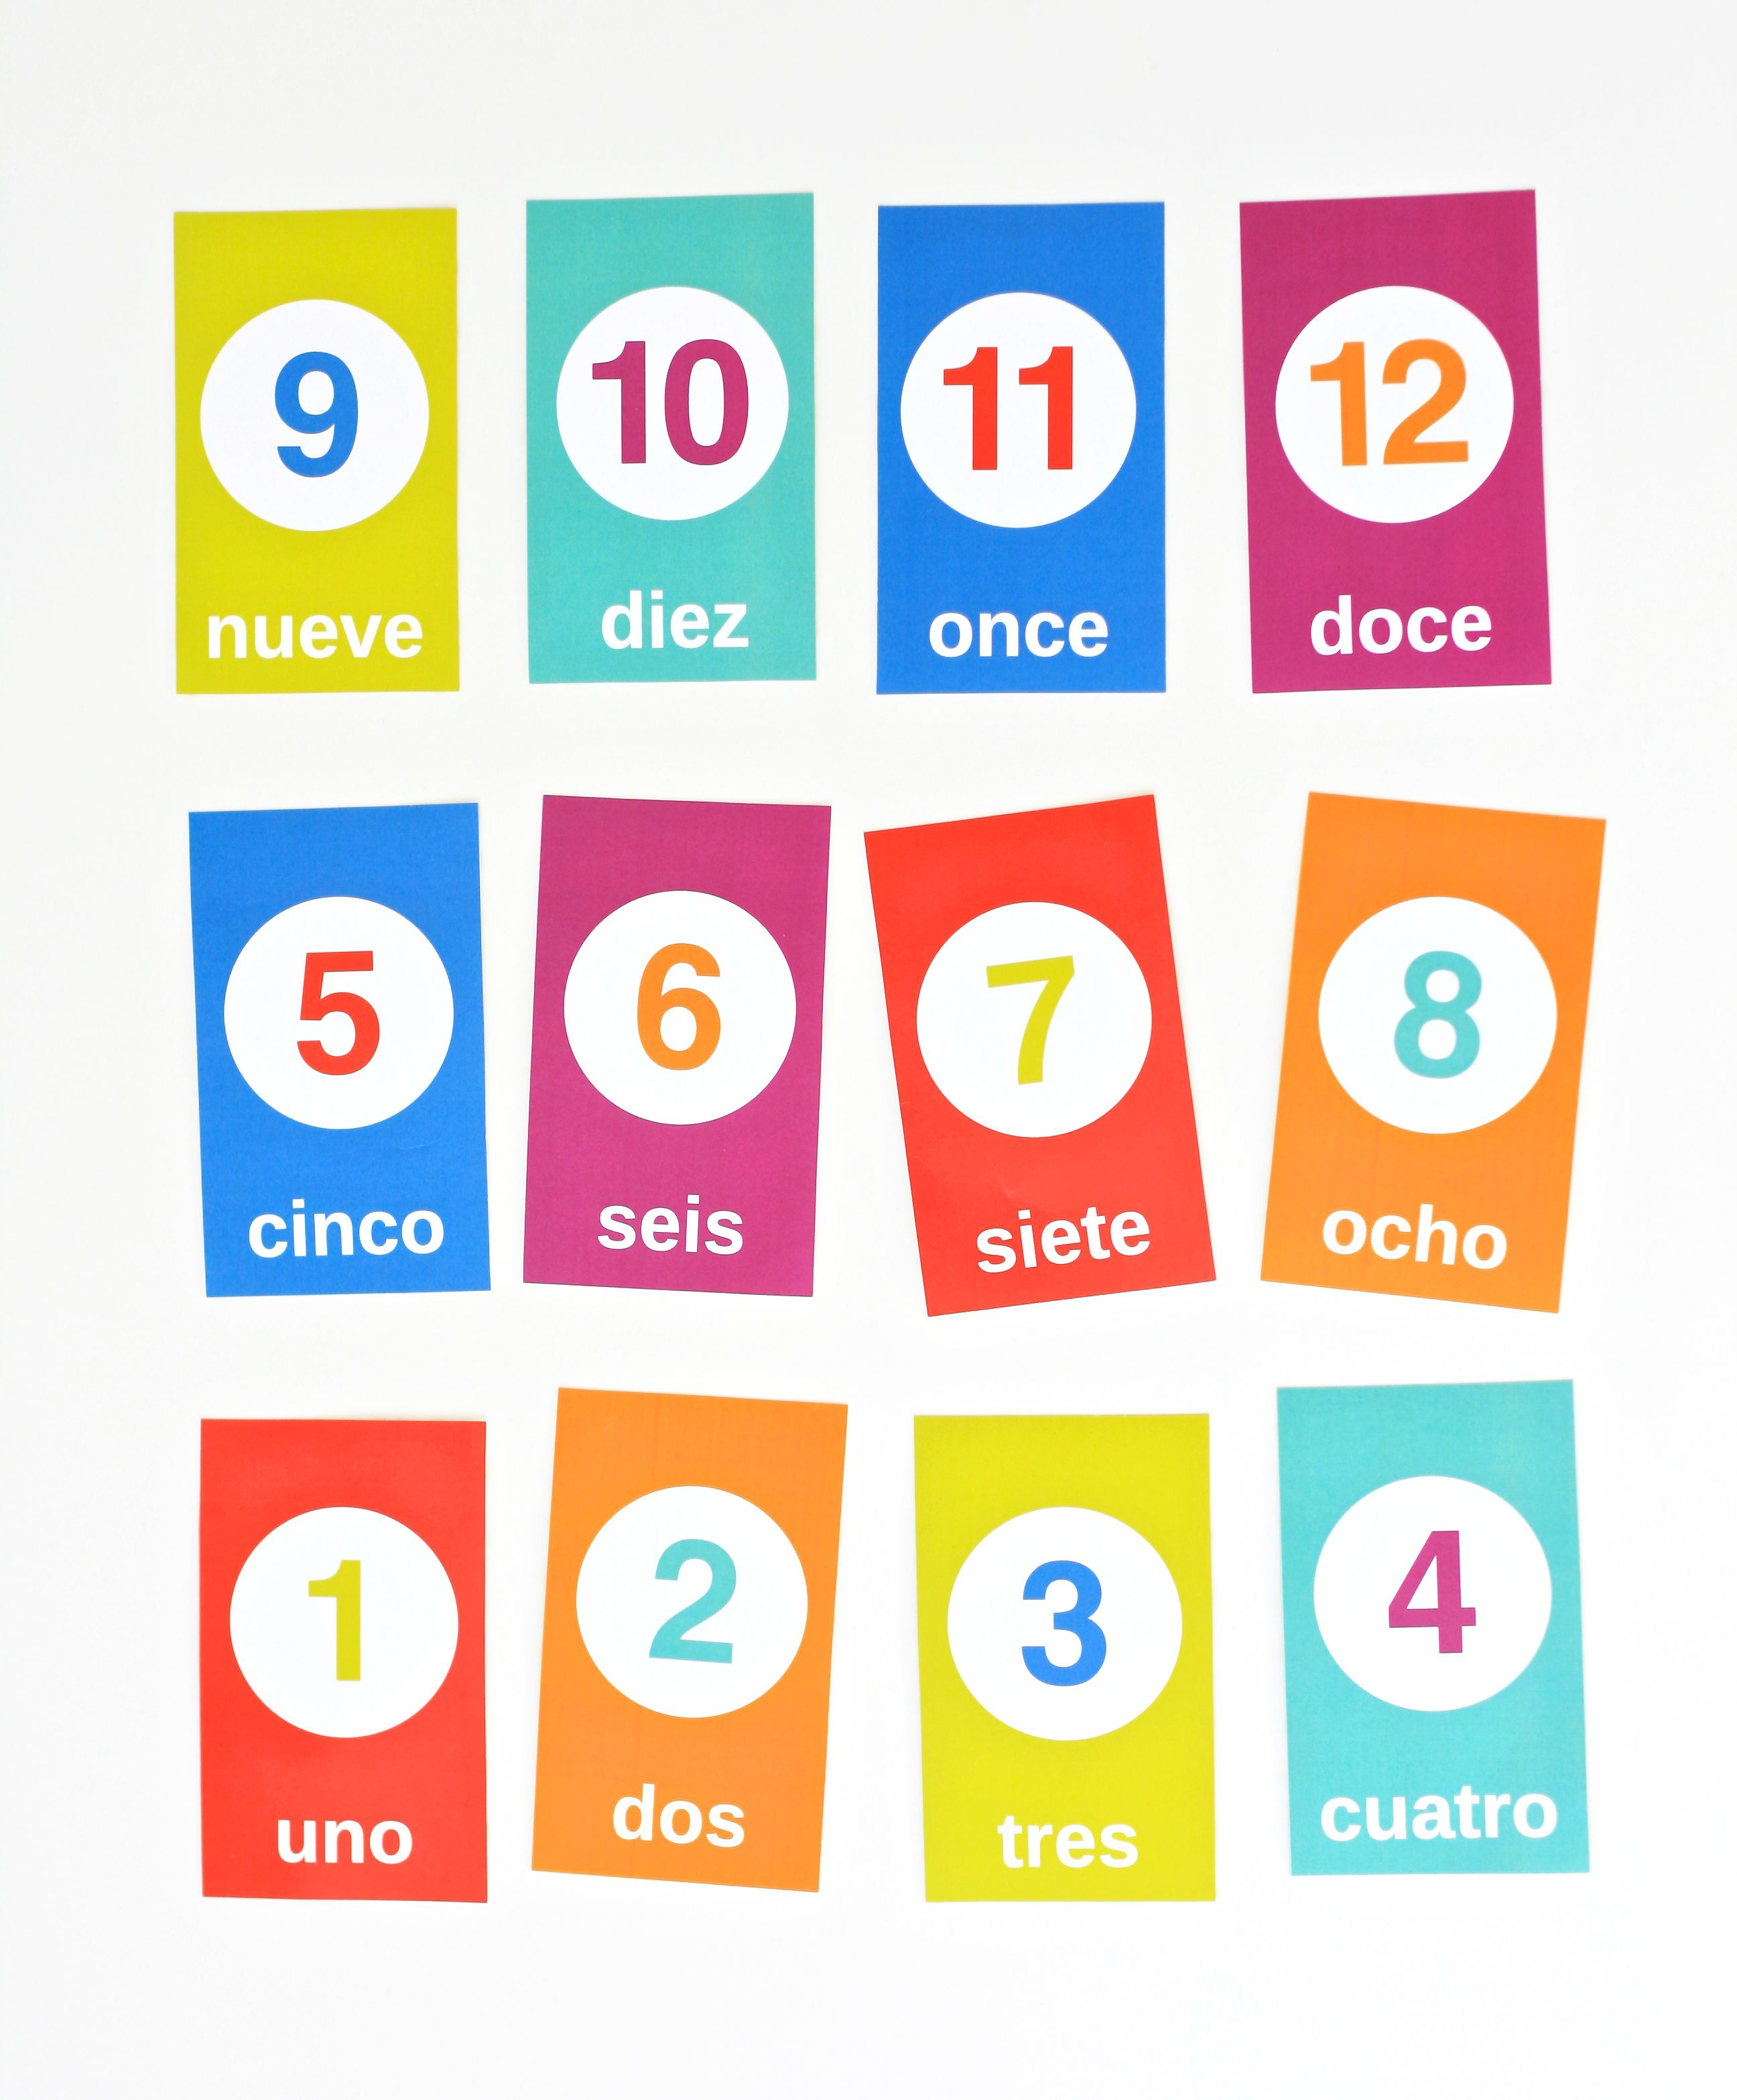 Free Flashcards For Counting In Spanish With Images